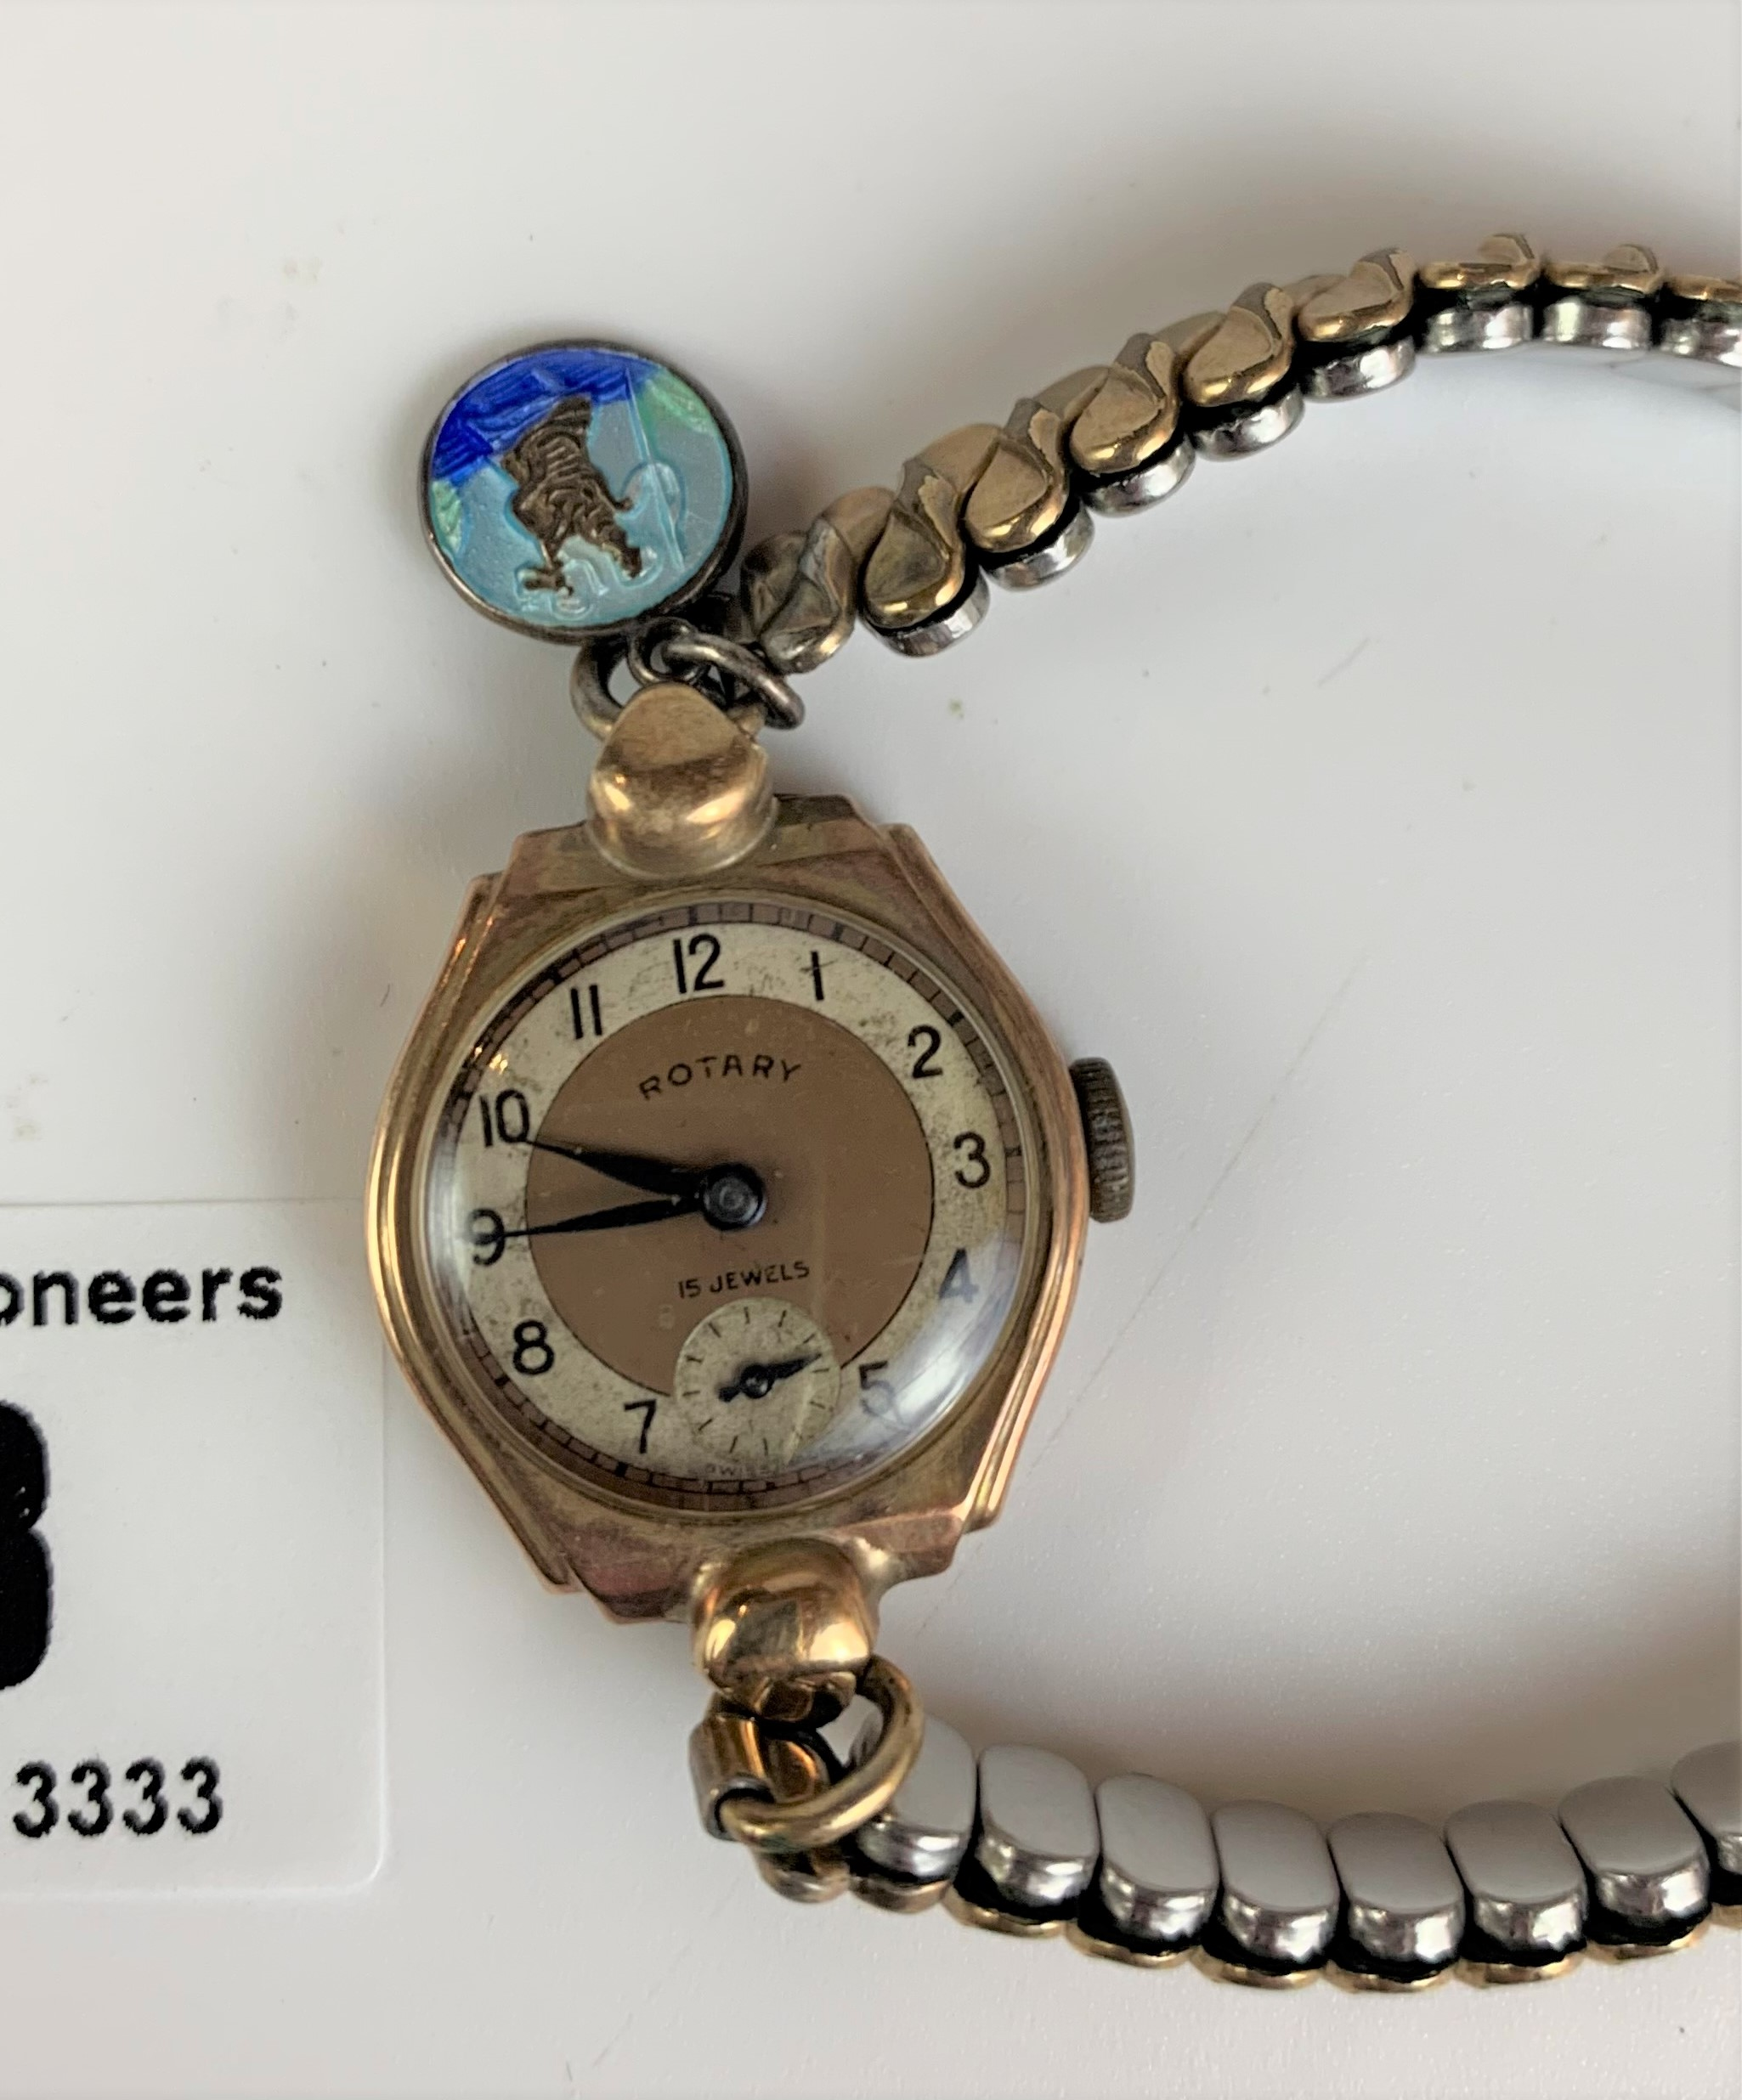 9k gold ladies Rotary watch with plated elasticated strap. Winder turns but not running - Image 3 of 4